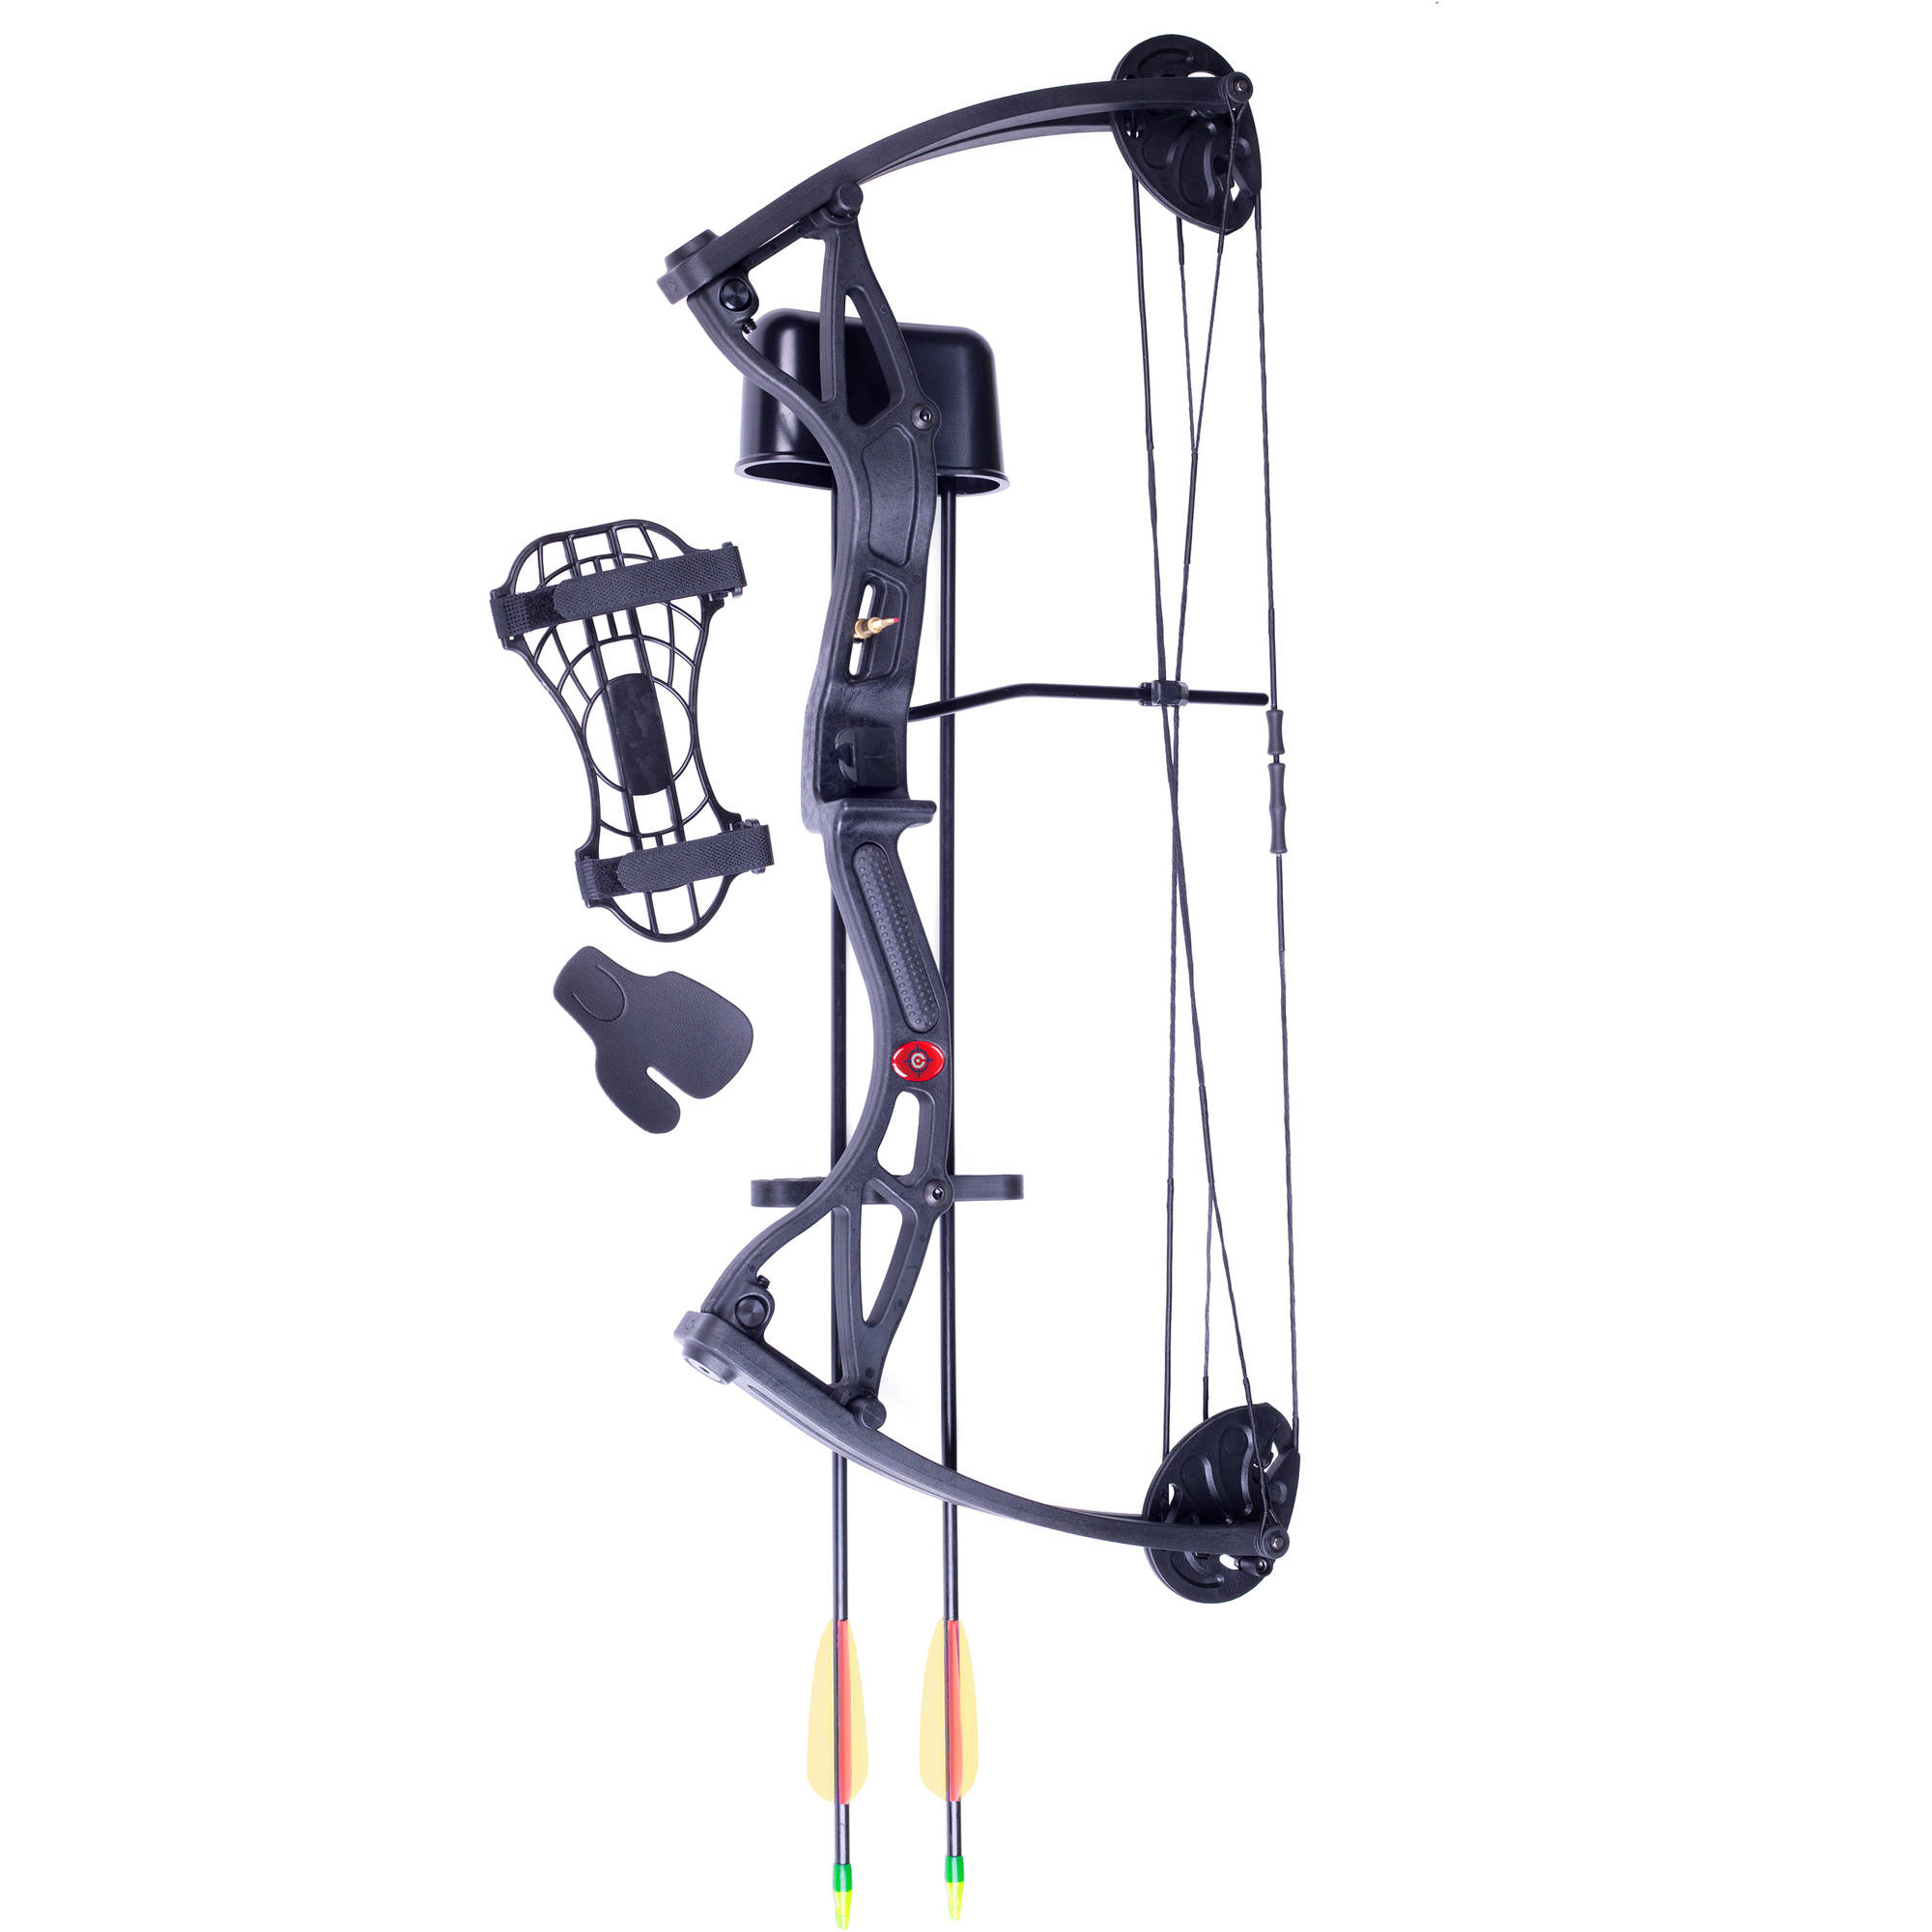 Crosman Archery Wildhorn Compound Bow Package